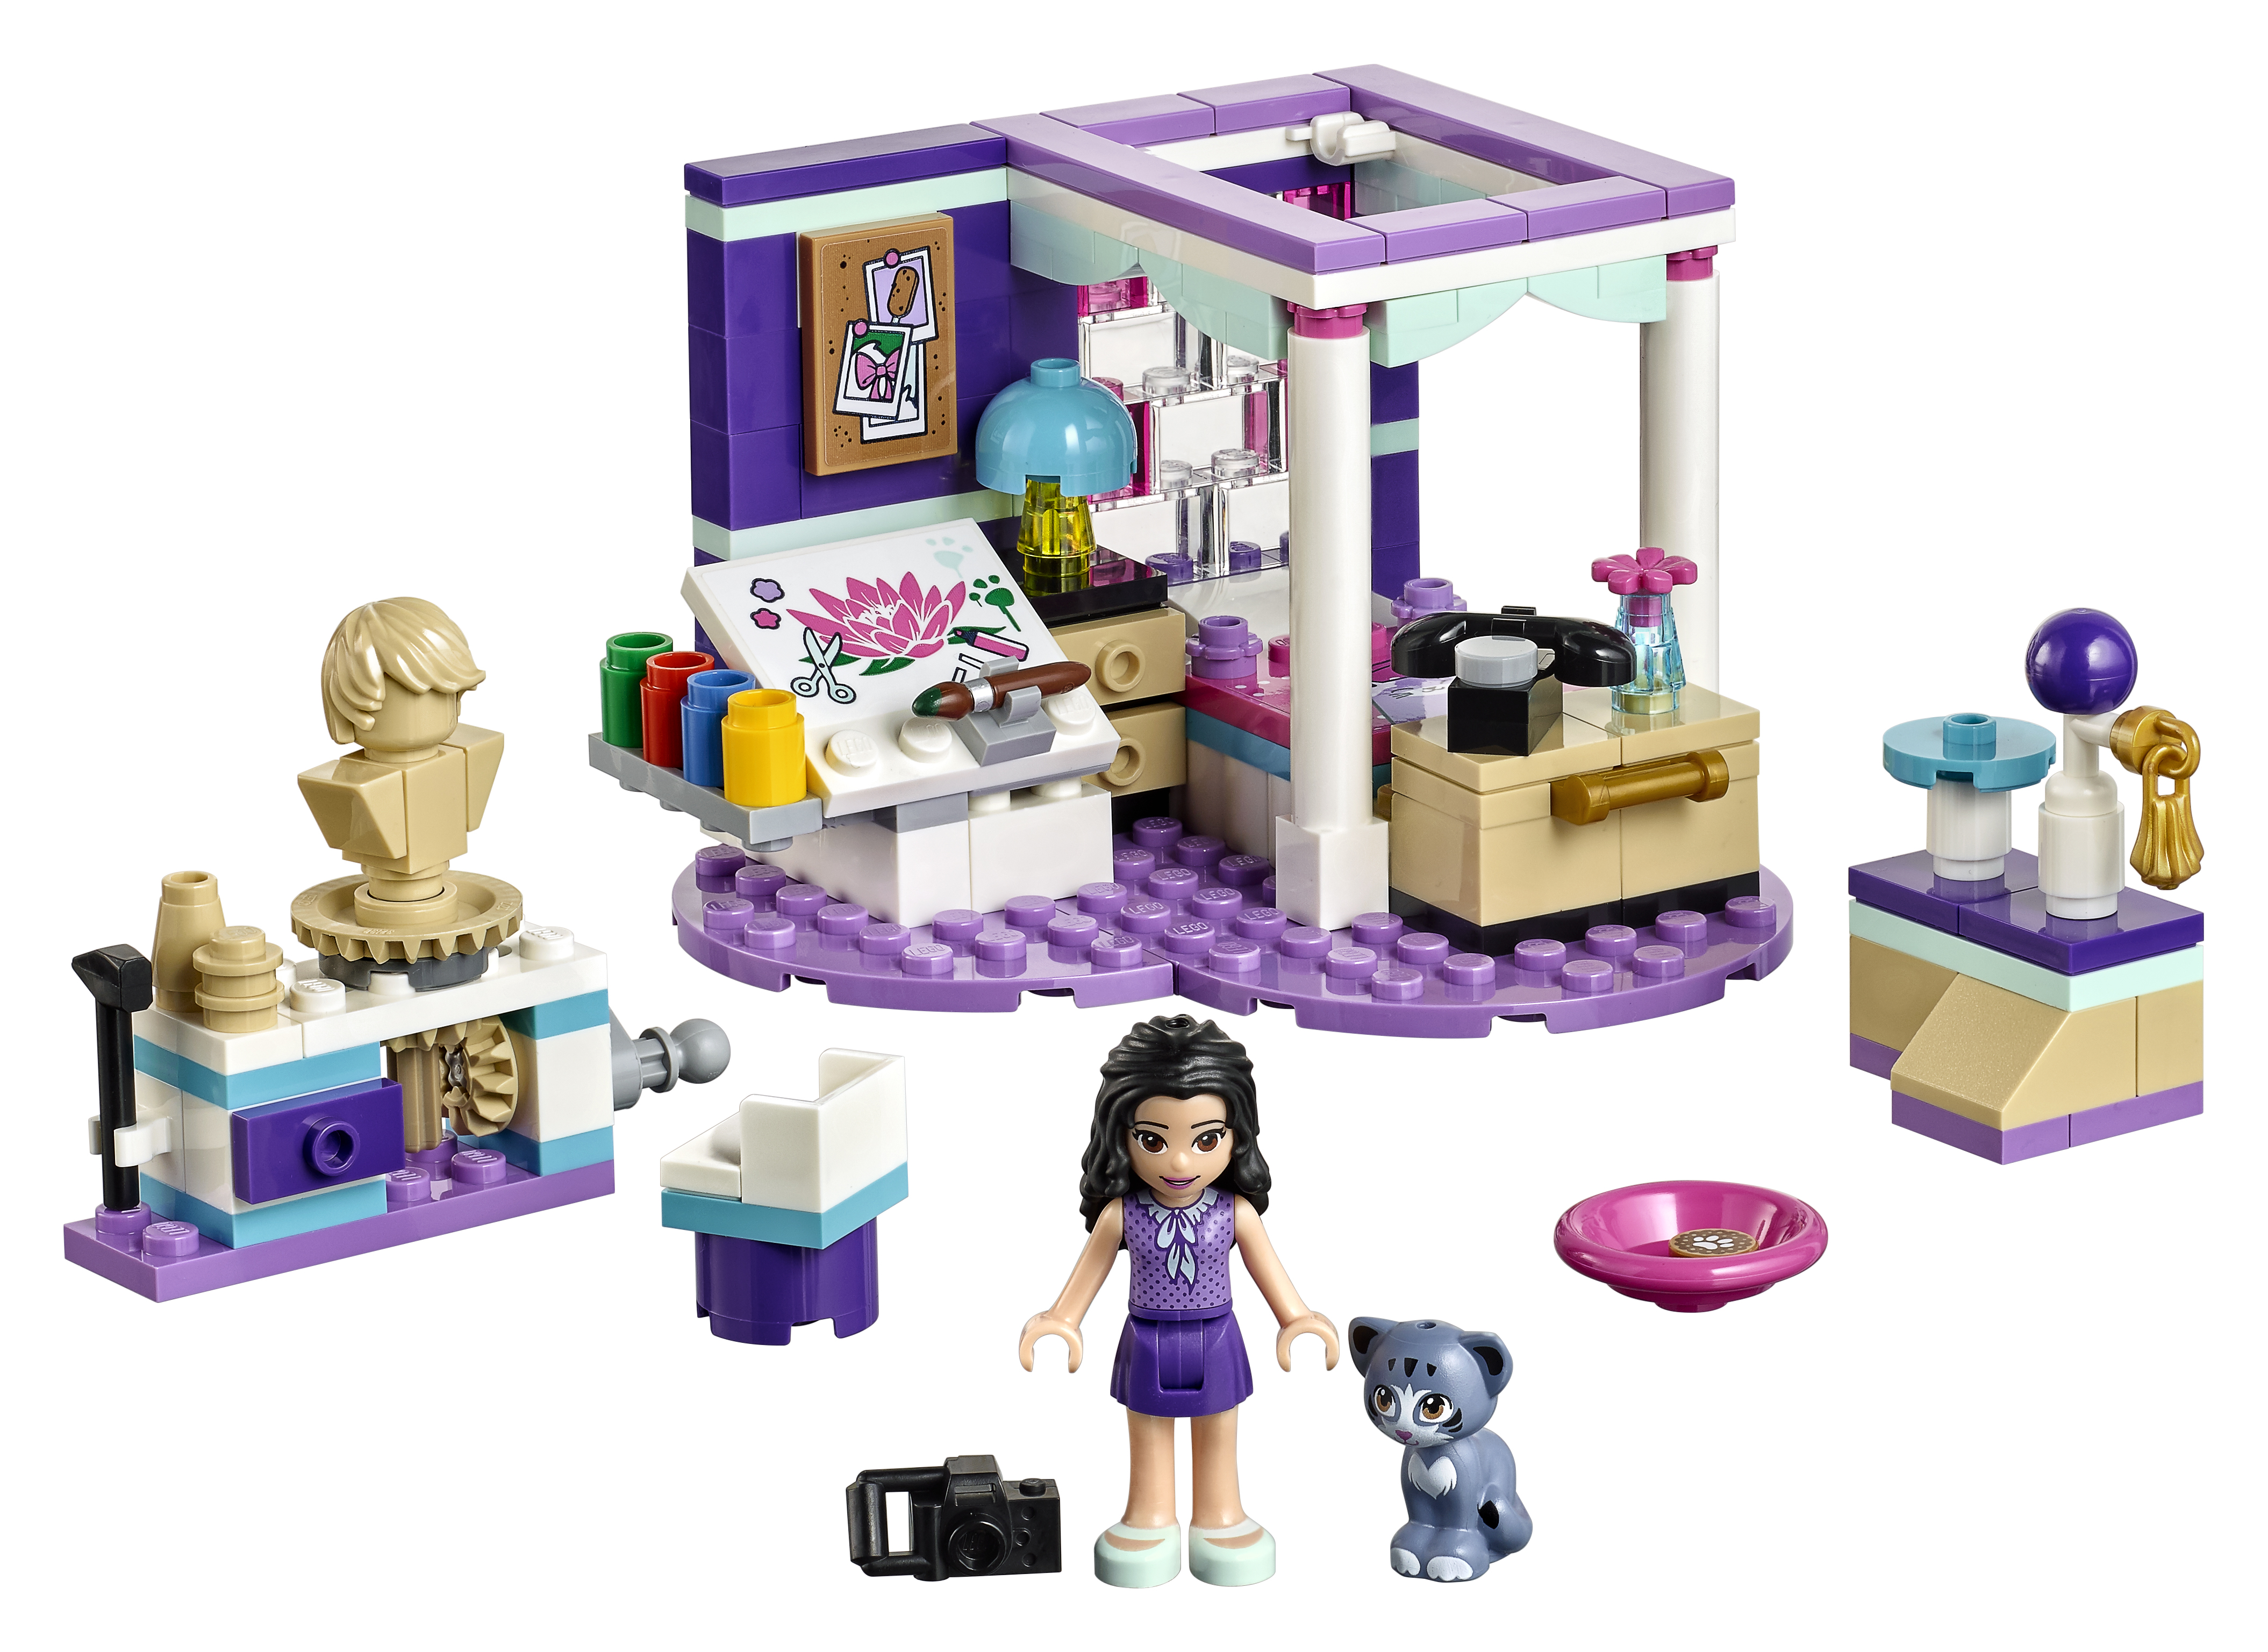 New For 2018! 41344 LEGO Friends Andrea/'s Accessories Store 294 Pieces Age 6